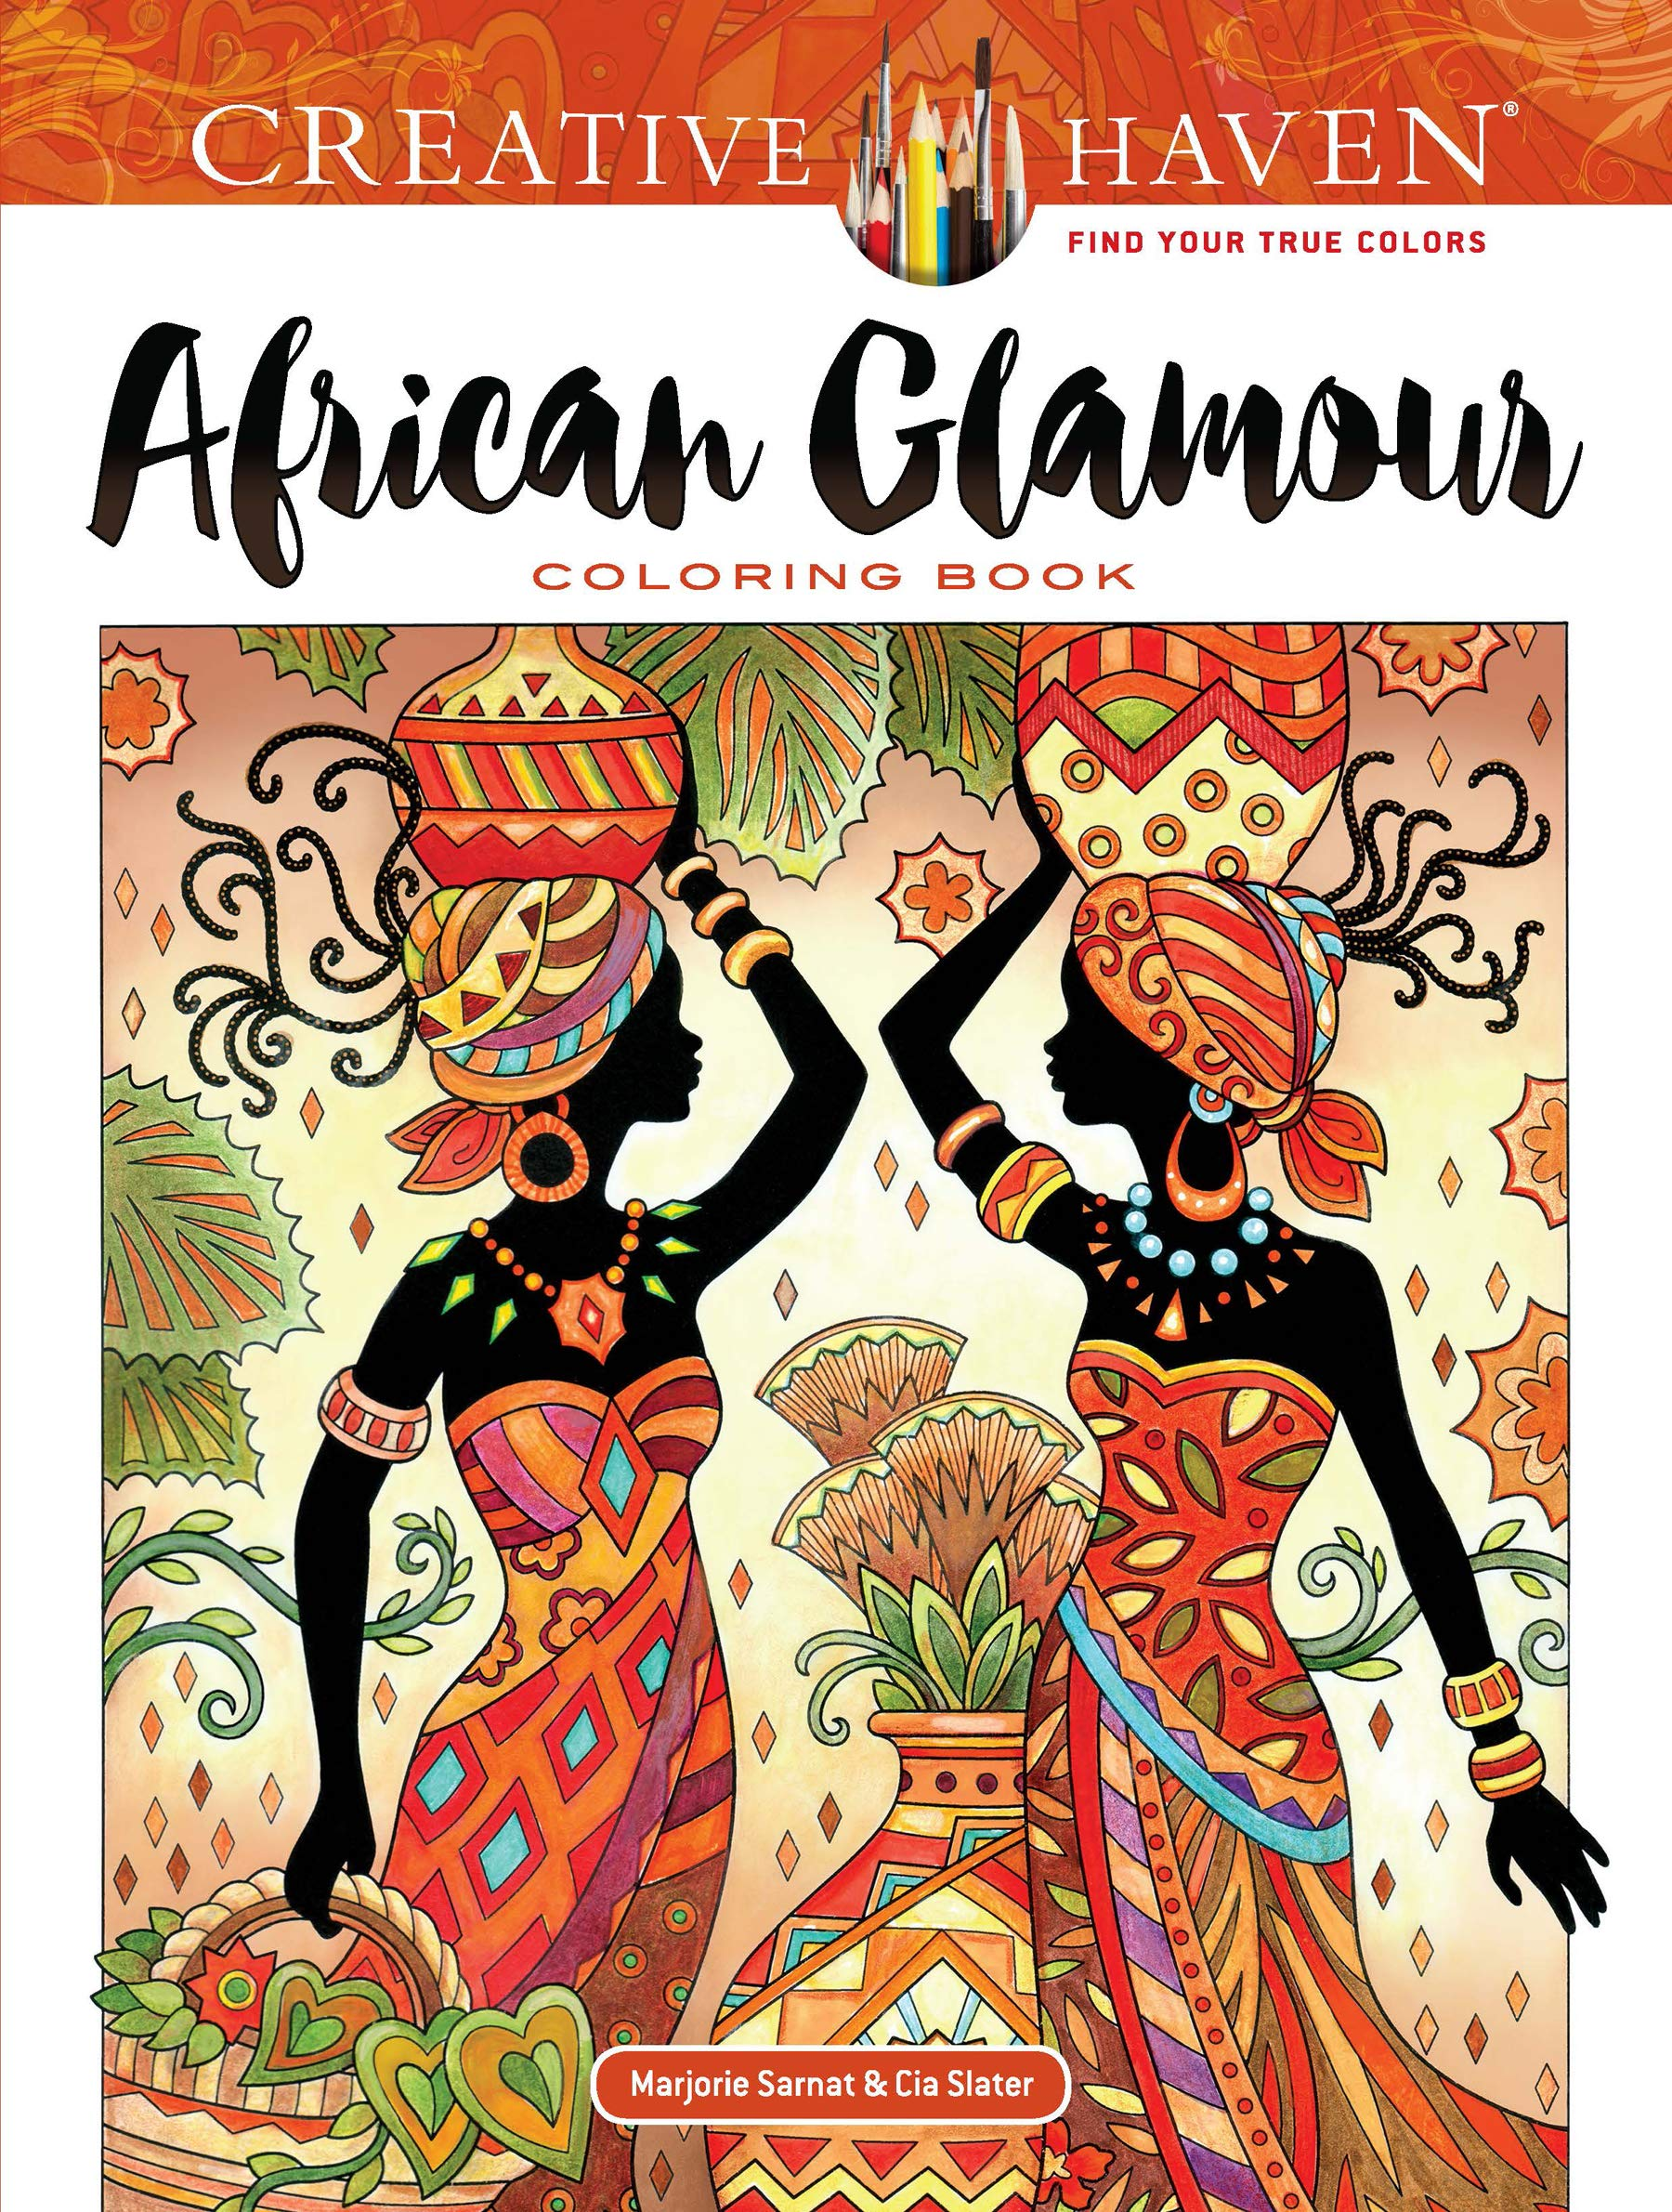 Amazon.com: Creative Haven African Glamour Coloring Book ...